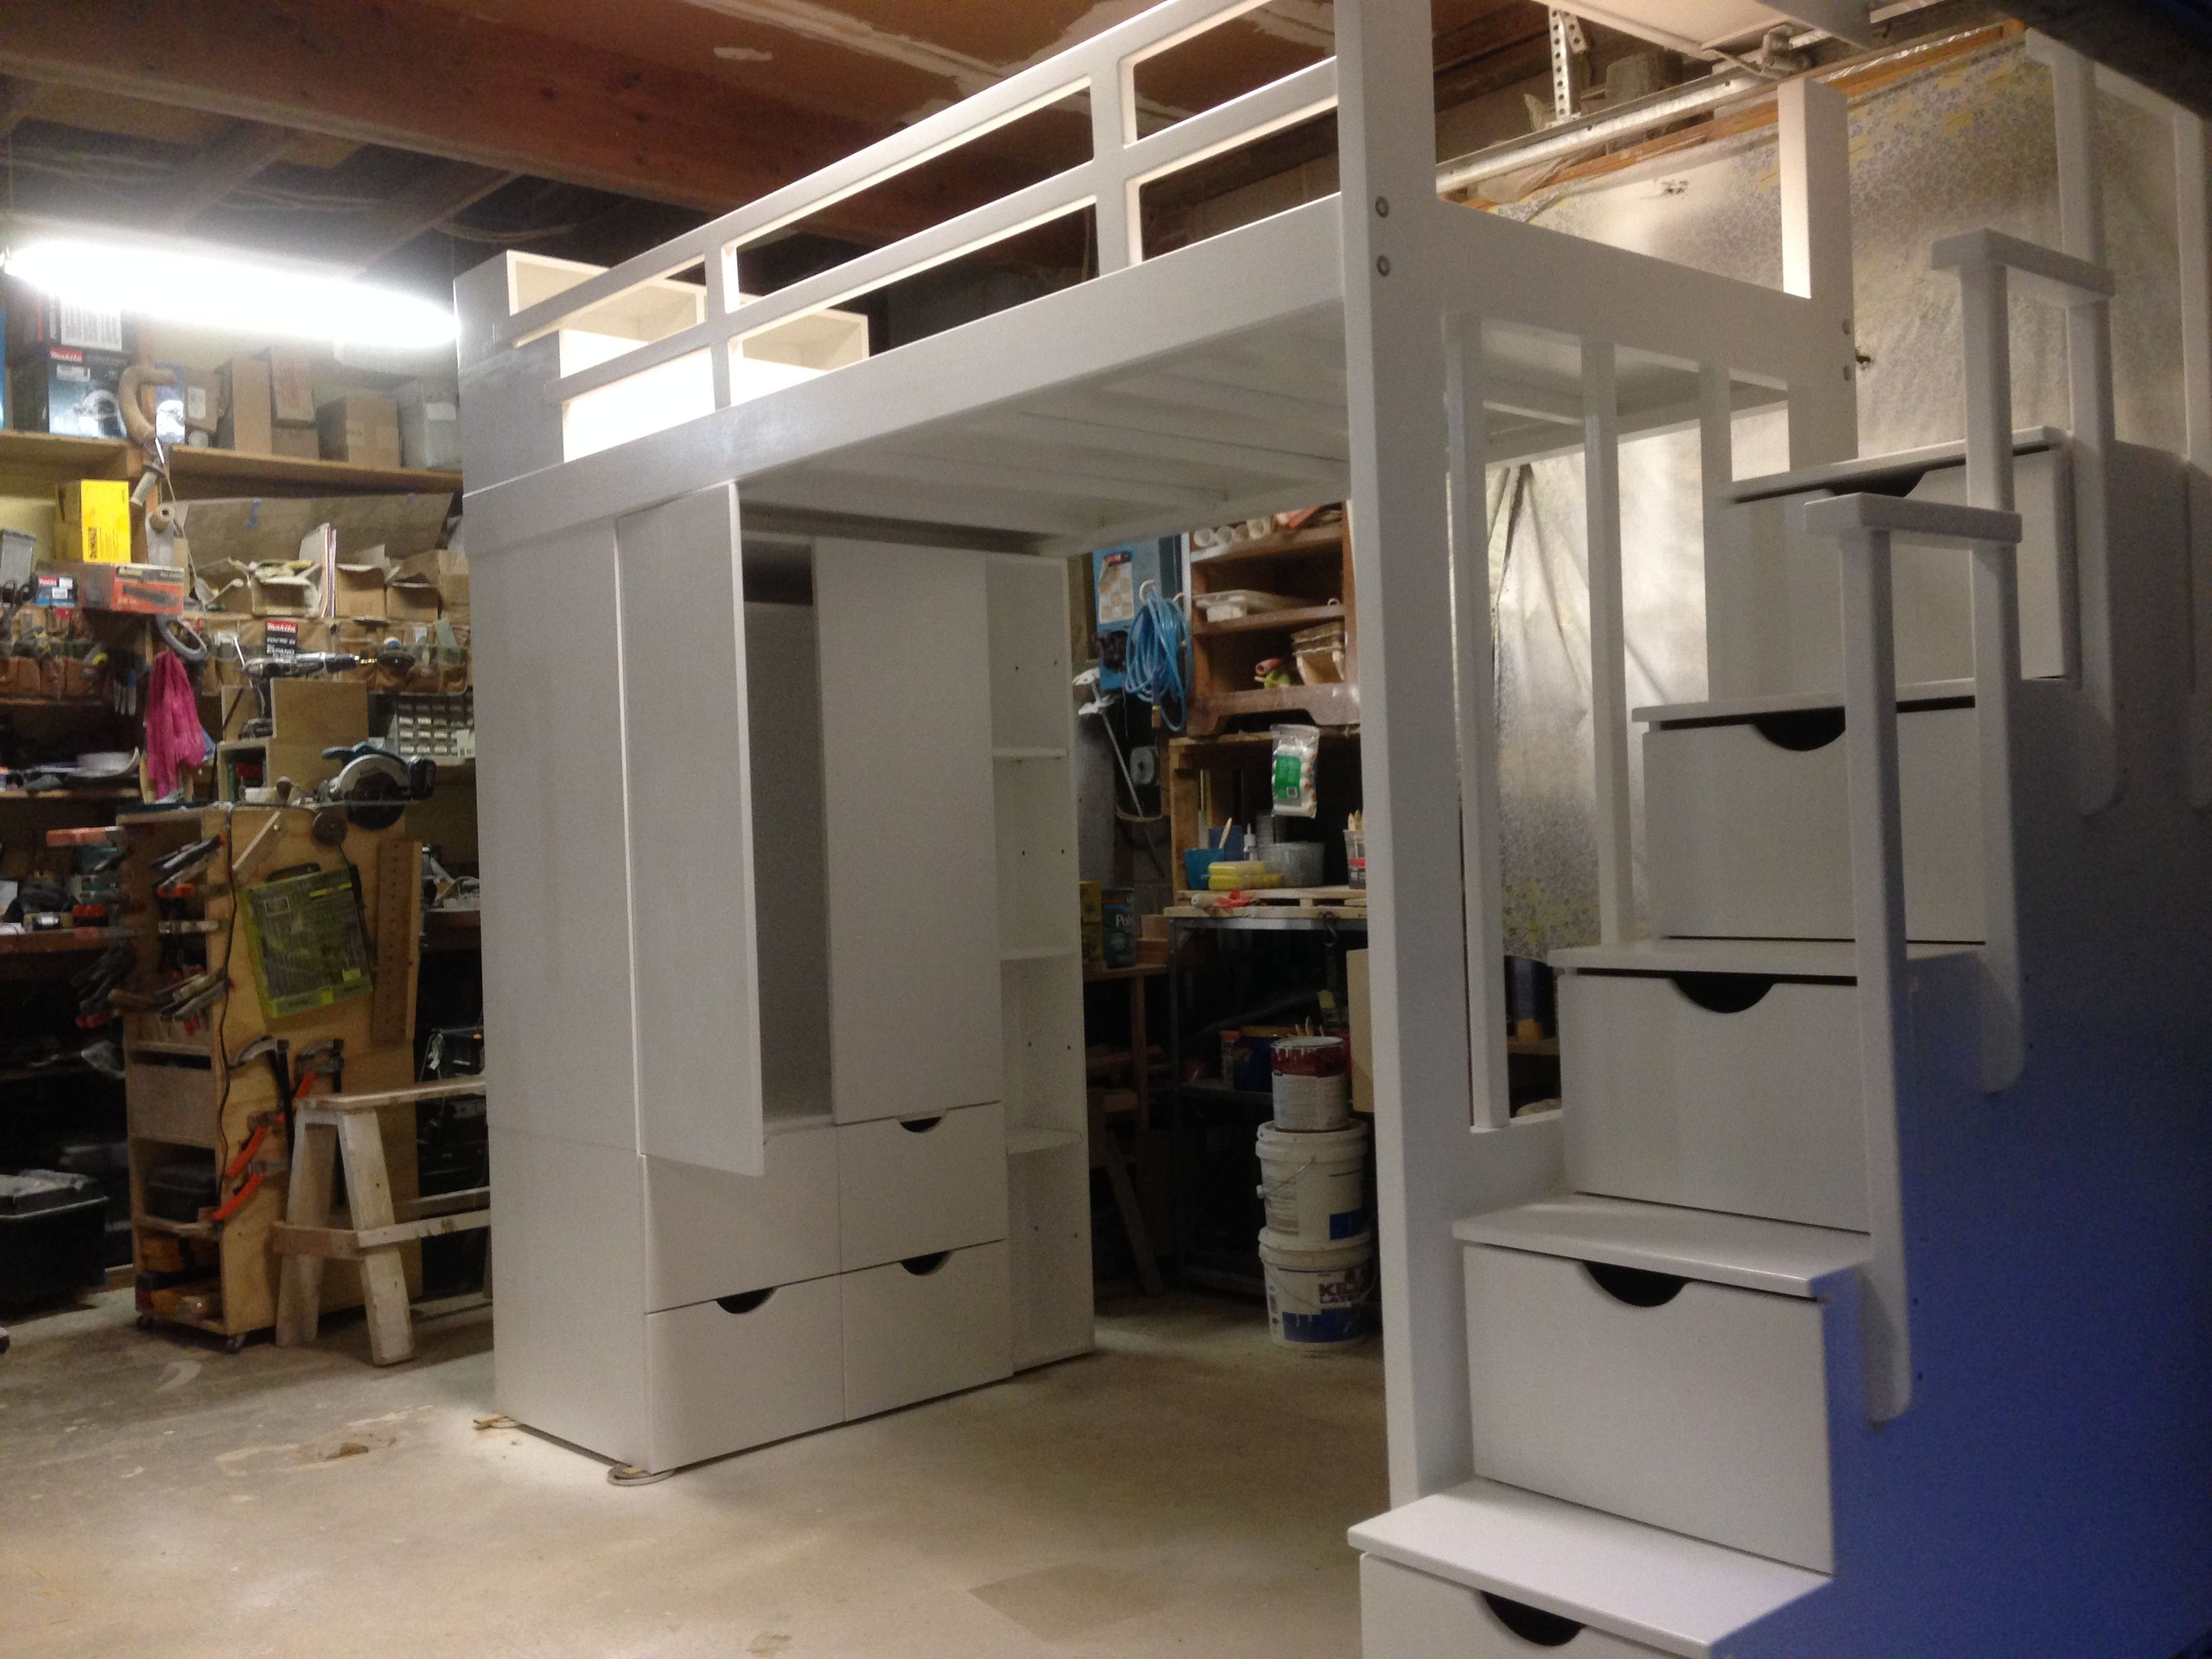 Wardrobe loft bed with storage steps | Laval Custom Lofts ...